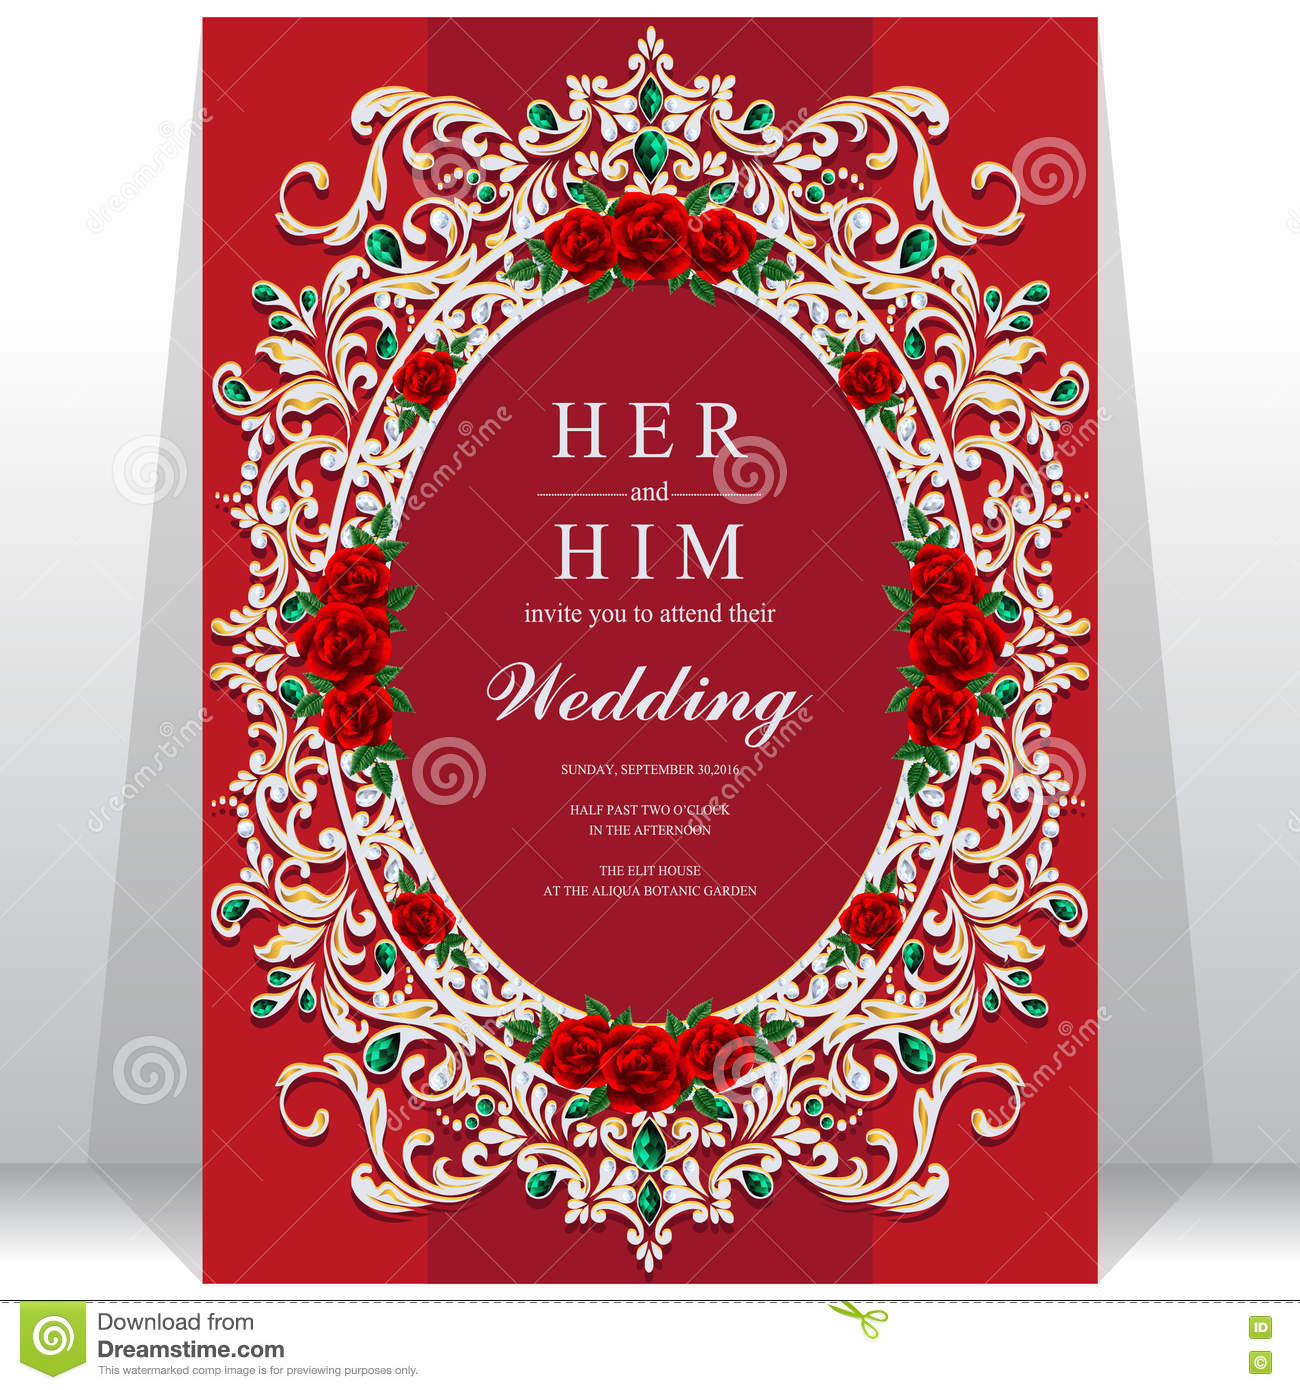 Wedding Invitation Or Card With Abstract Background. Stock Vector ...